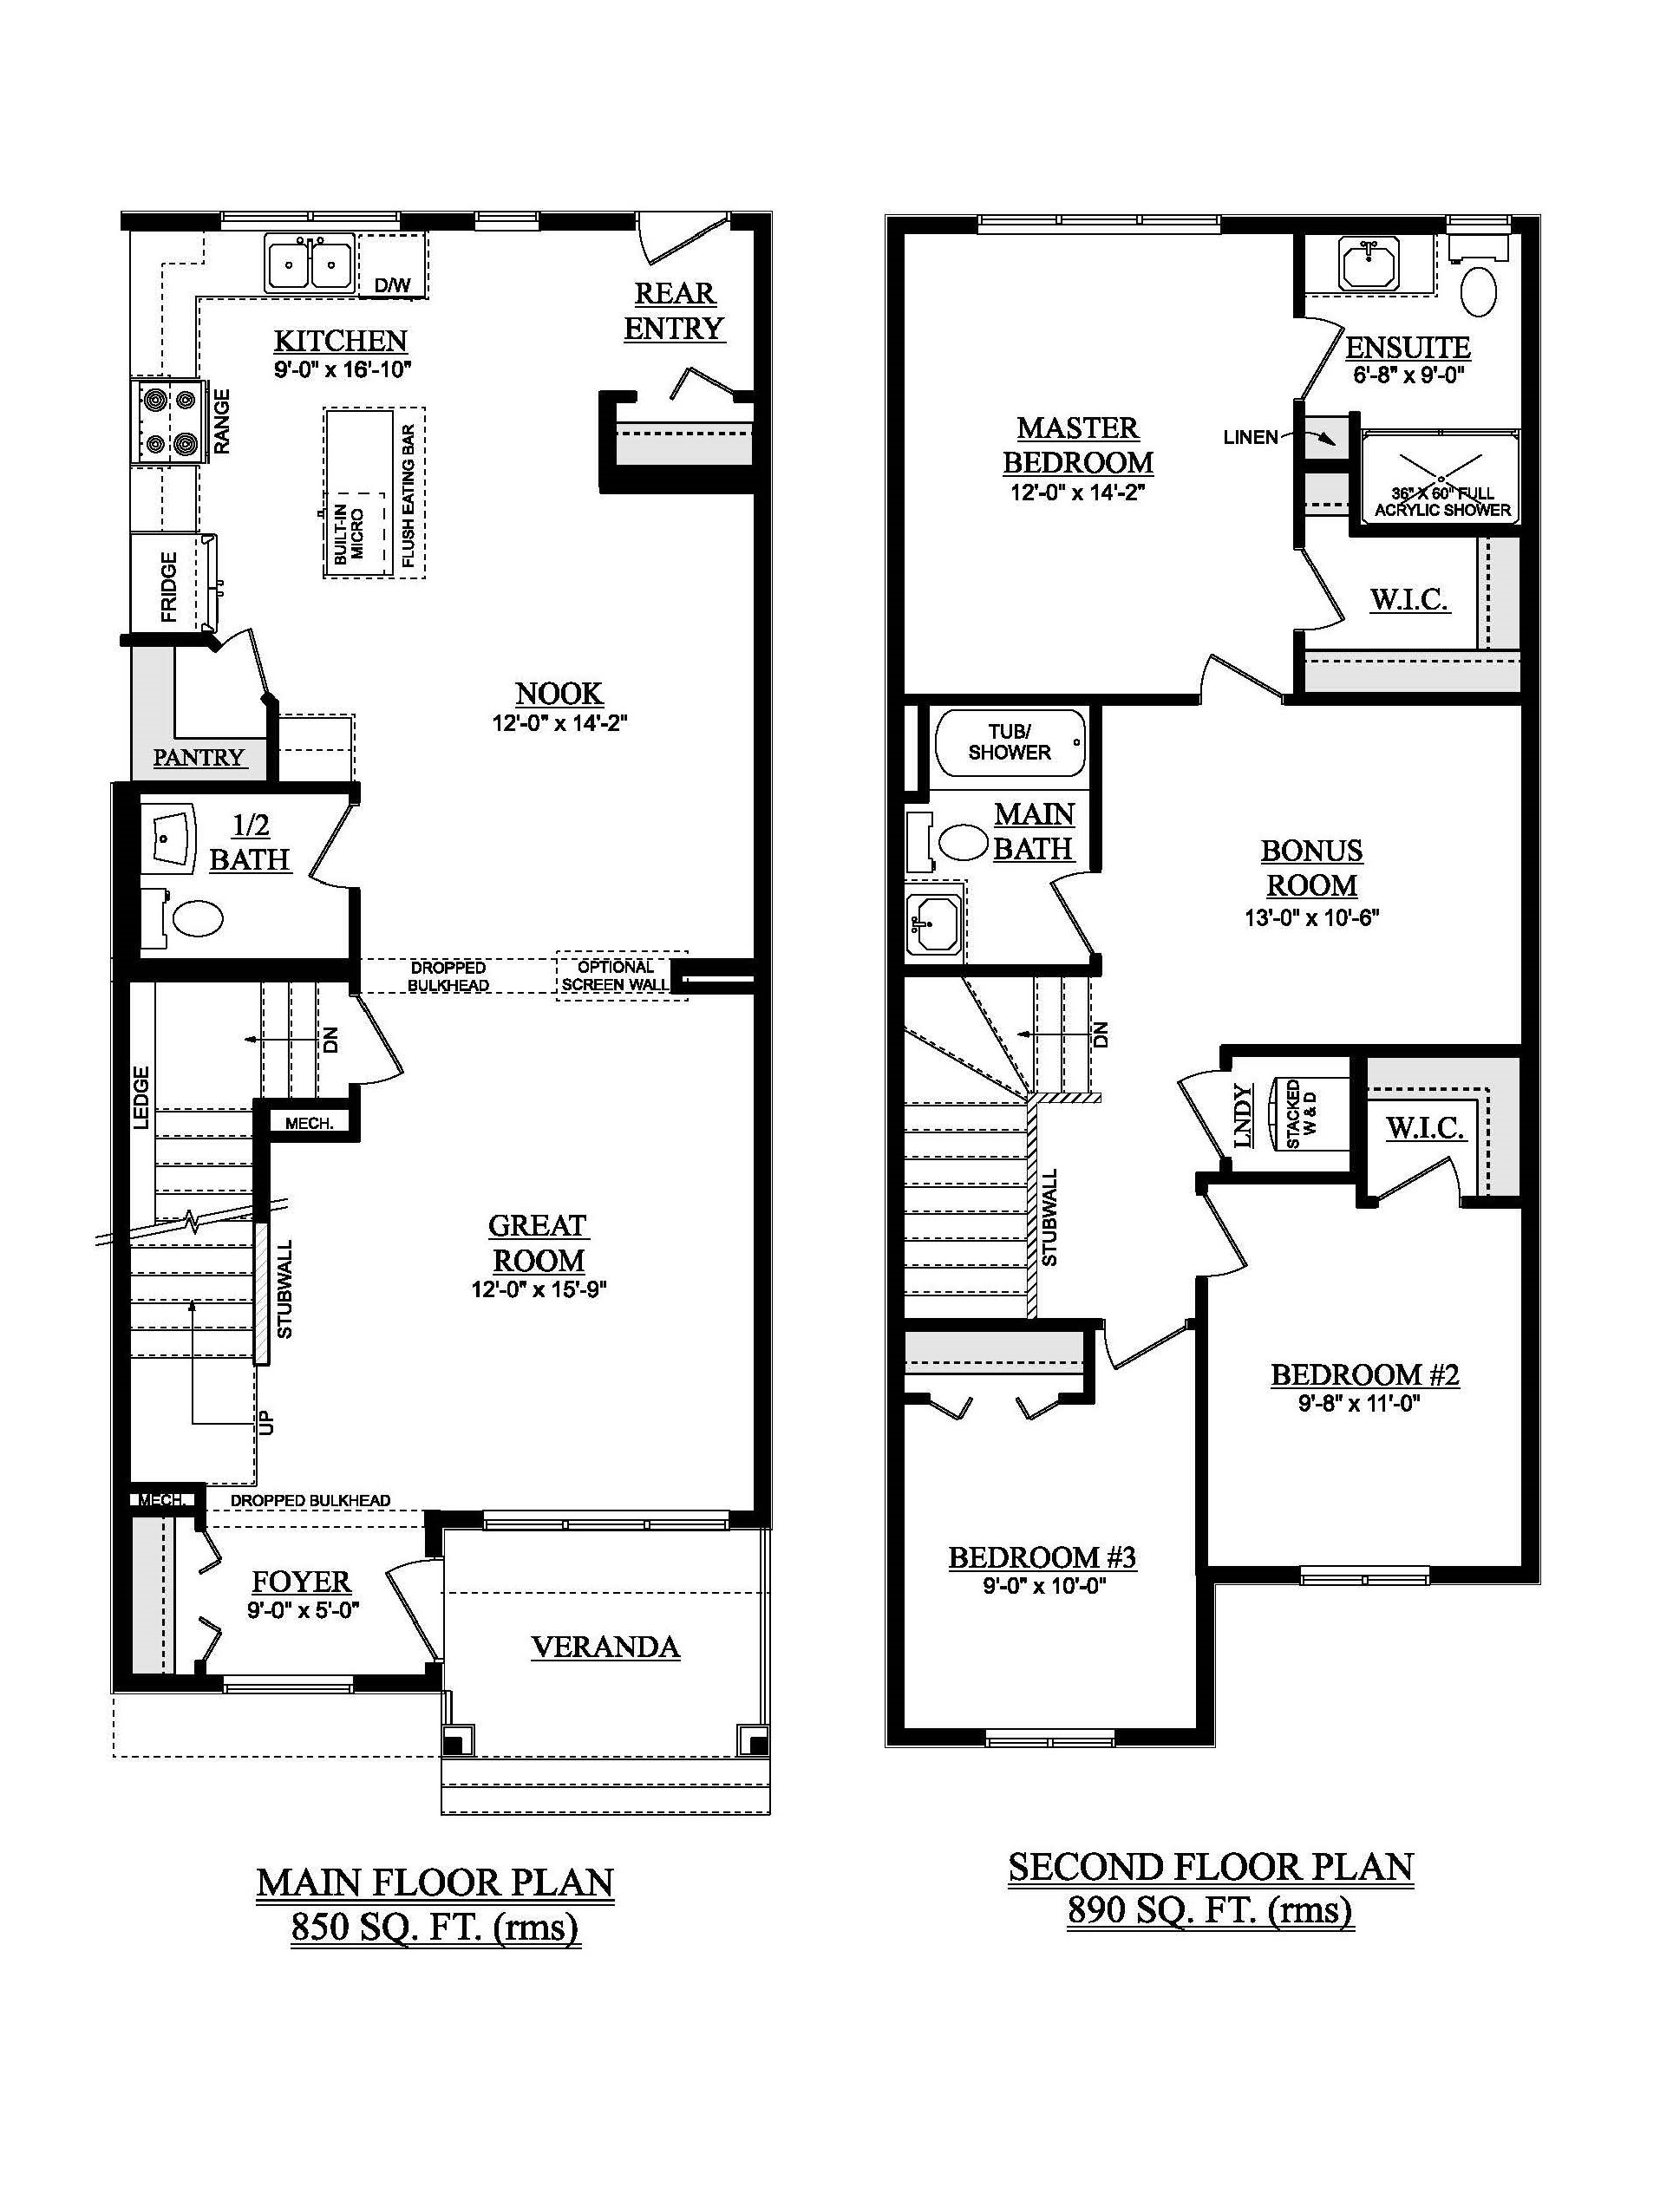 McConachie Heights Showhome Floorplan